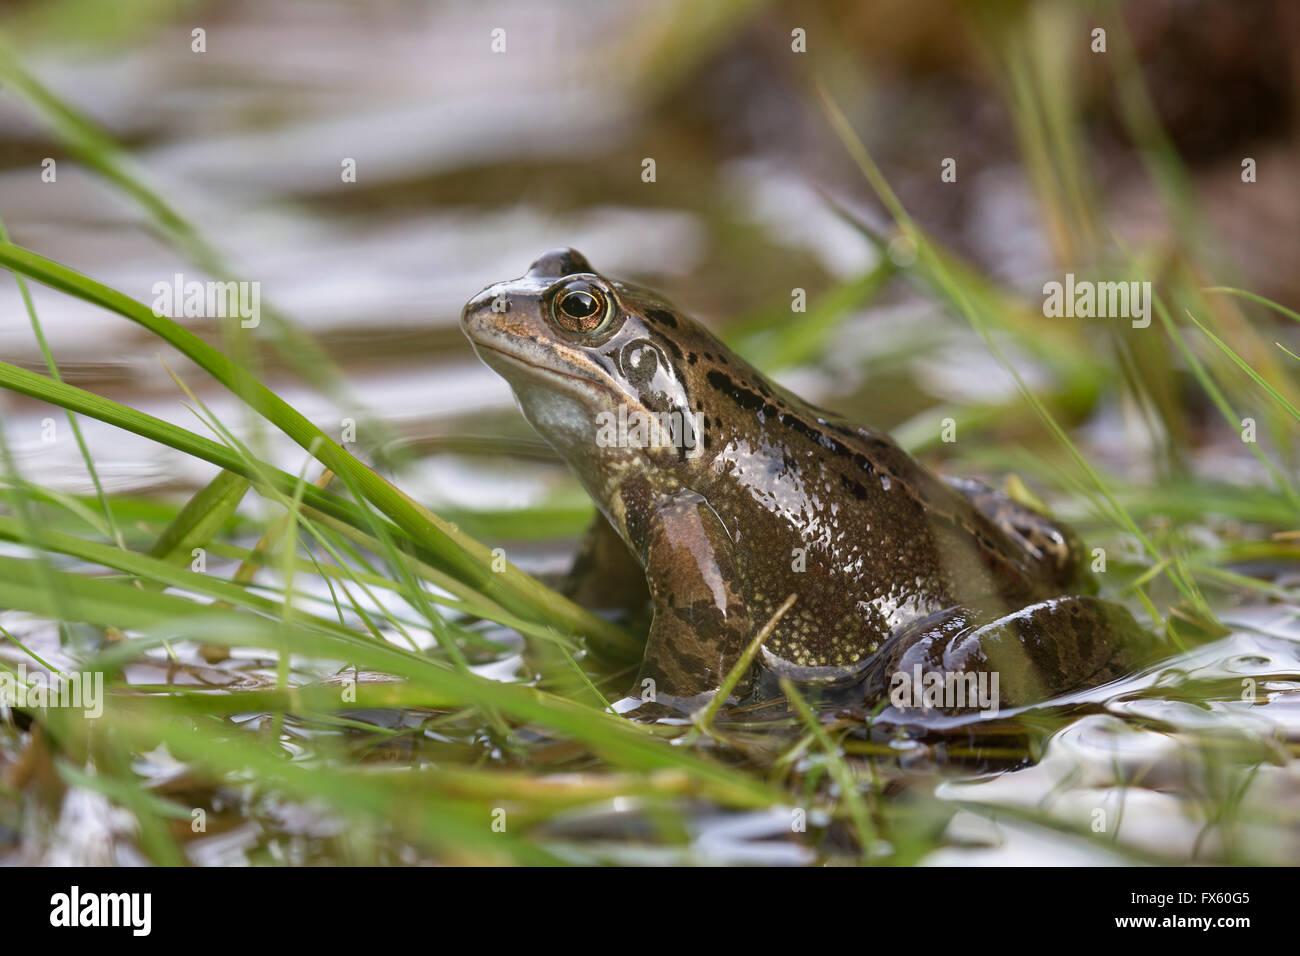 Common frog (Rana temporaria), Northumberland, UK - Stock Image